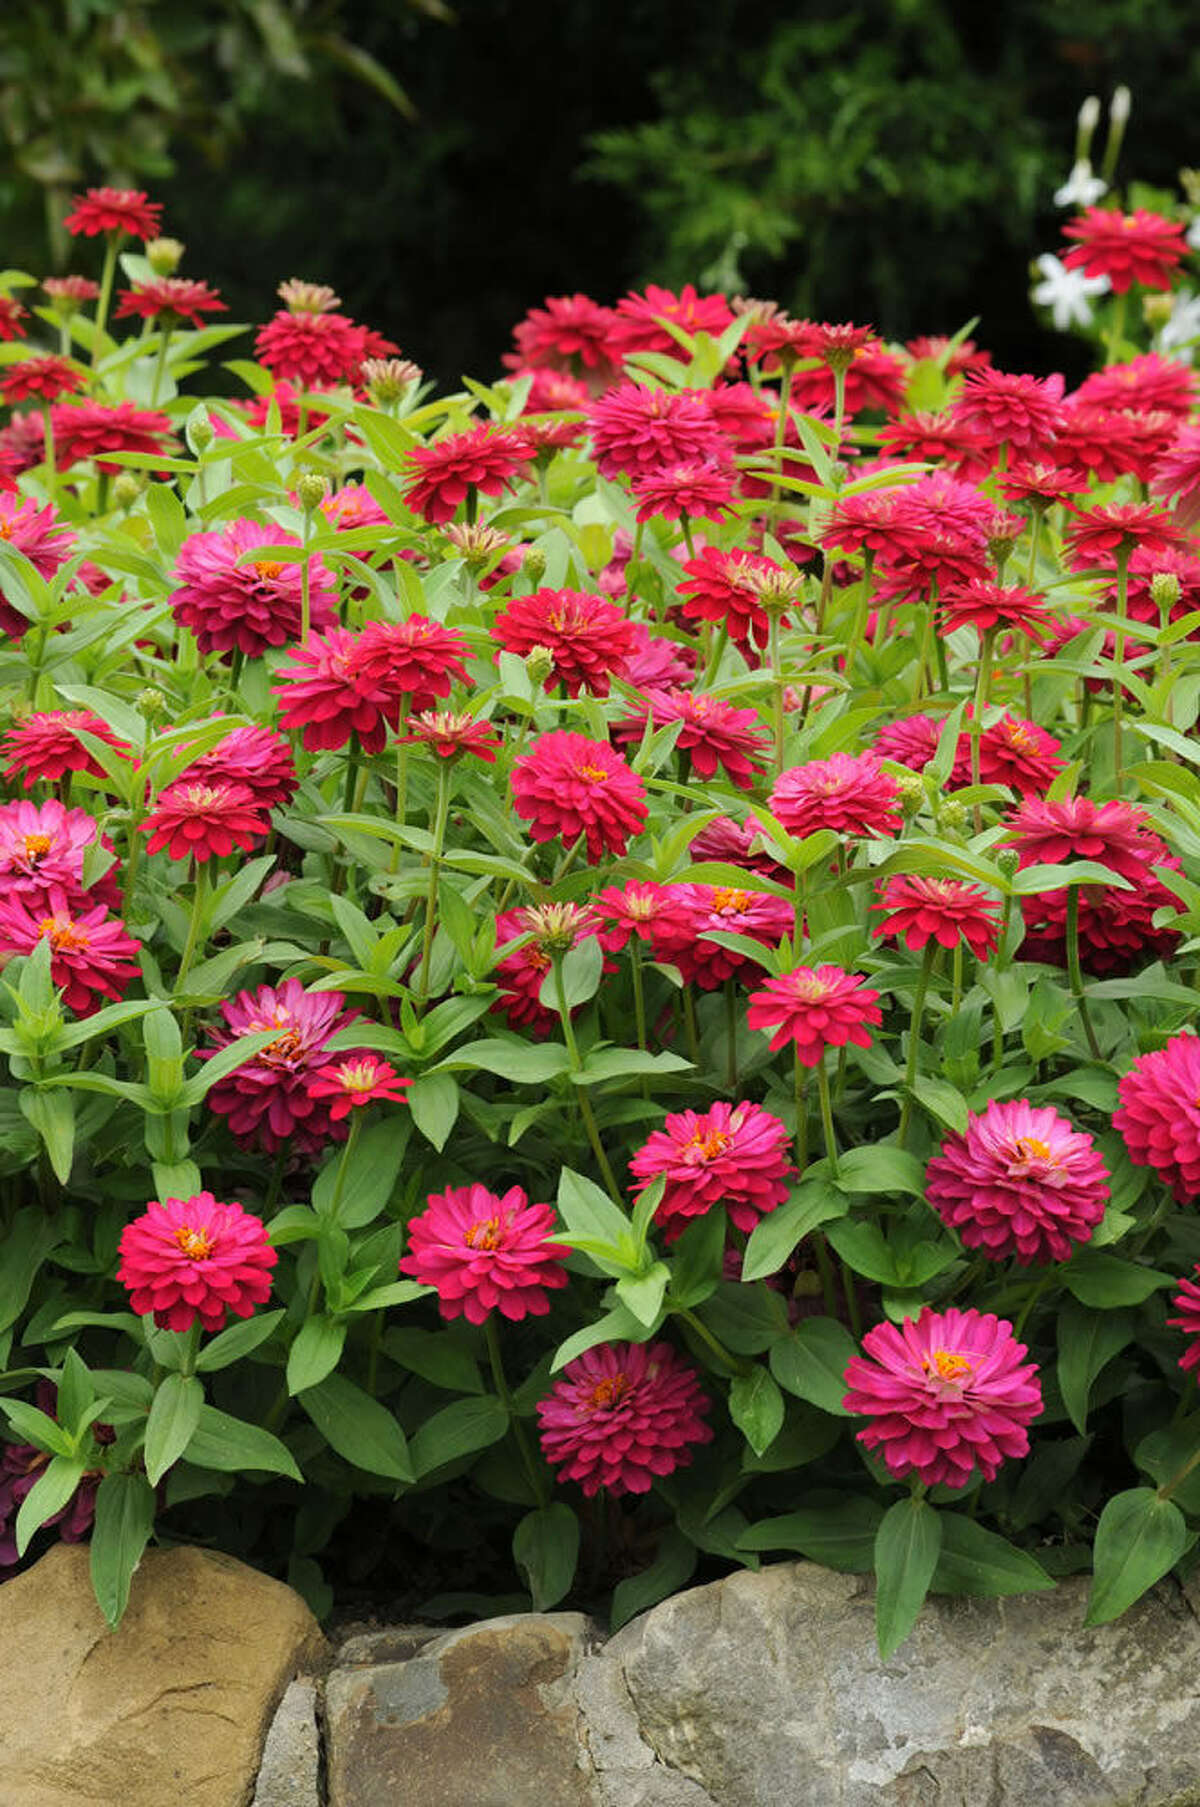 Zinnias, such as Double Zahara cherry, tolerate heat but they are not xeriscape plants and need water a few times a week.